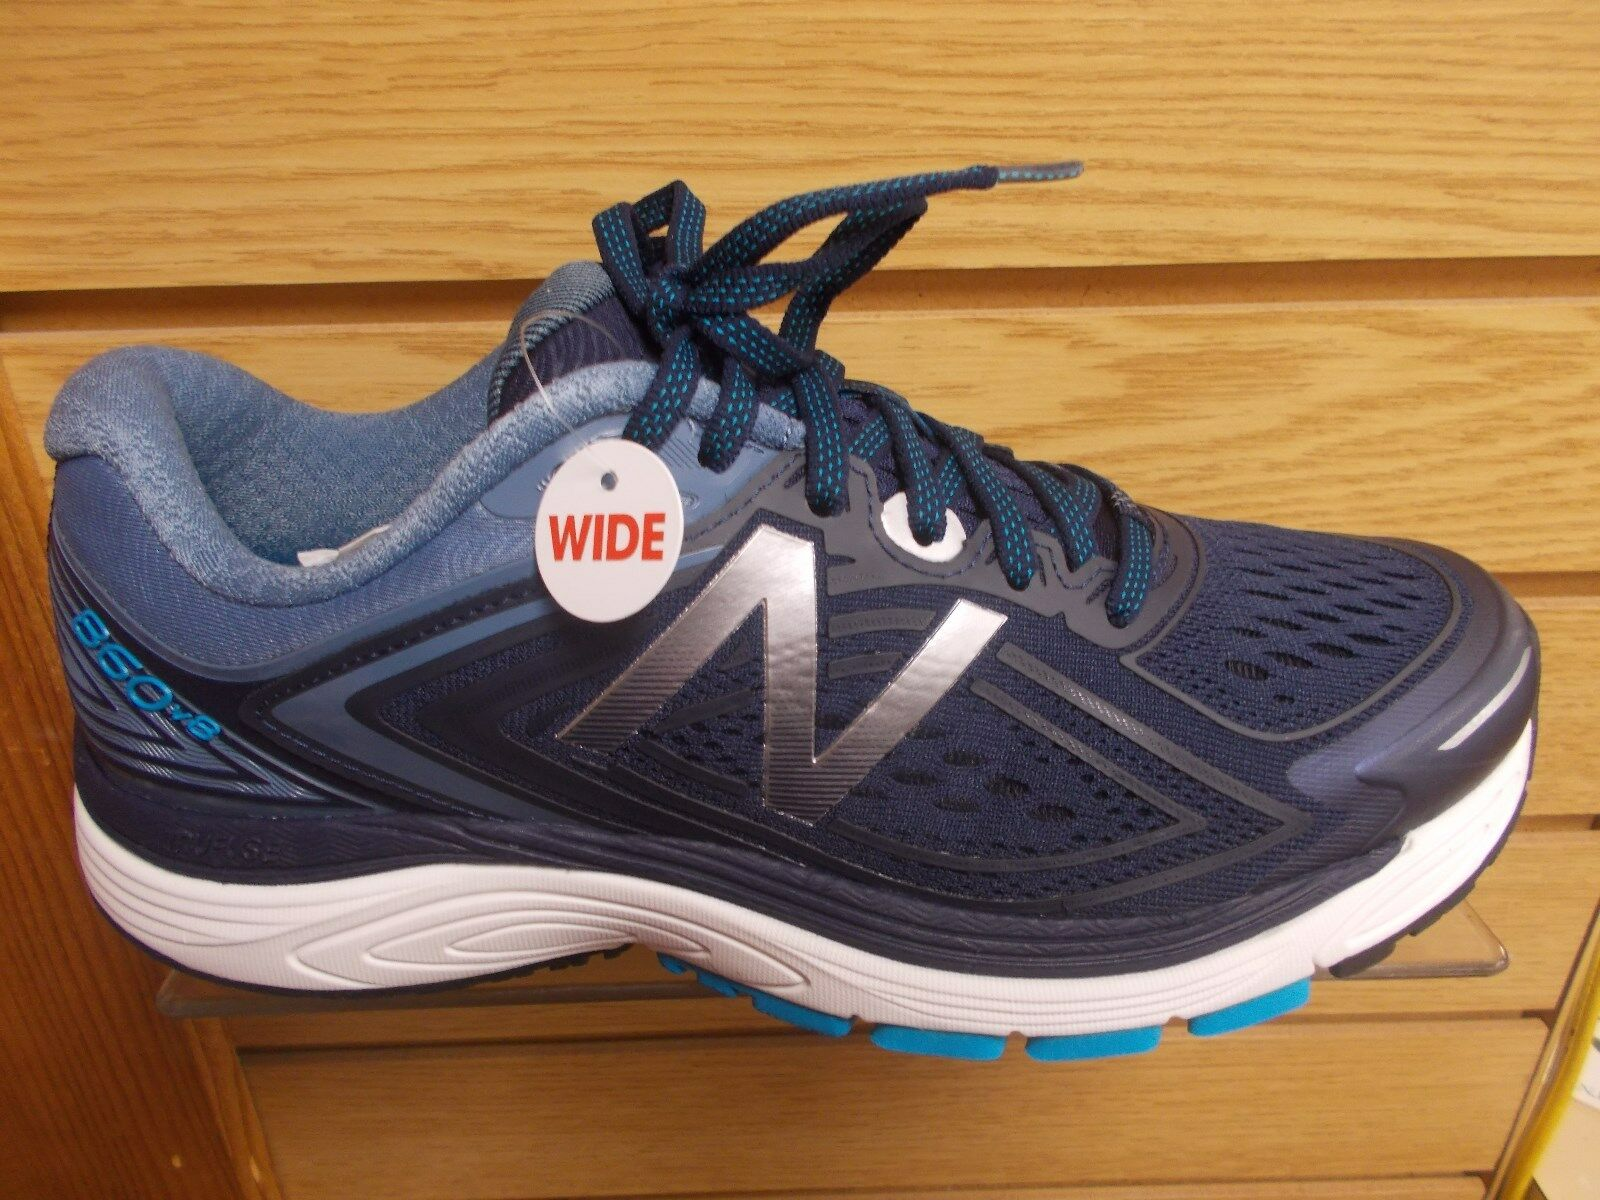 NEW BALANCE MEN'S 860 V8 RUNNING SHOES WIDE 2E WIDTH  NEW MULTIPLE SIZES